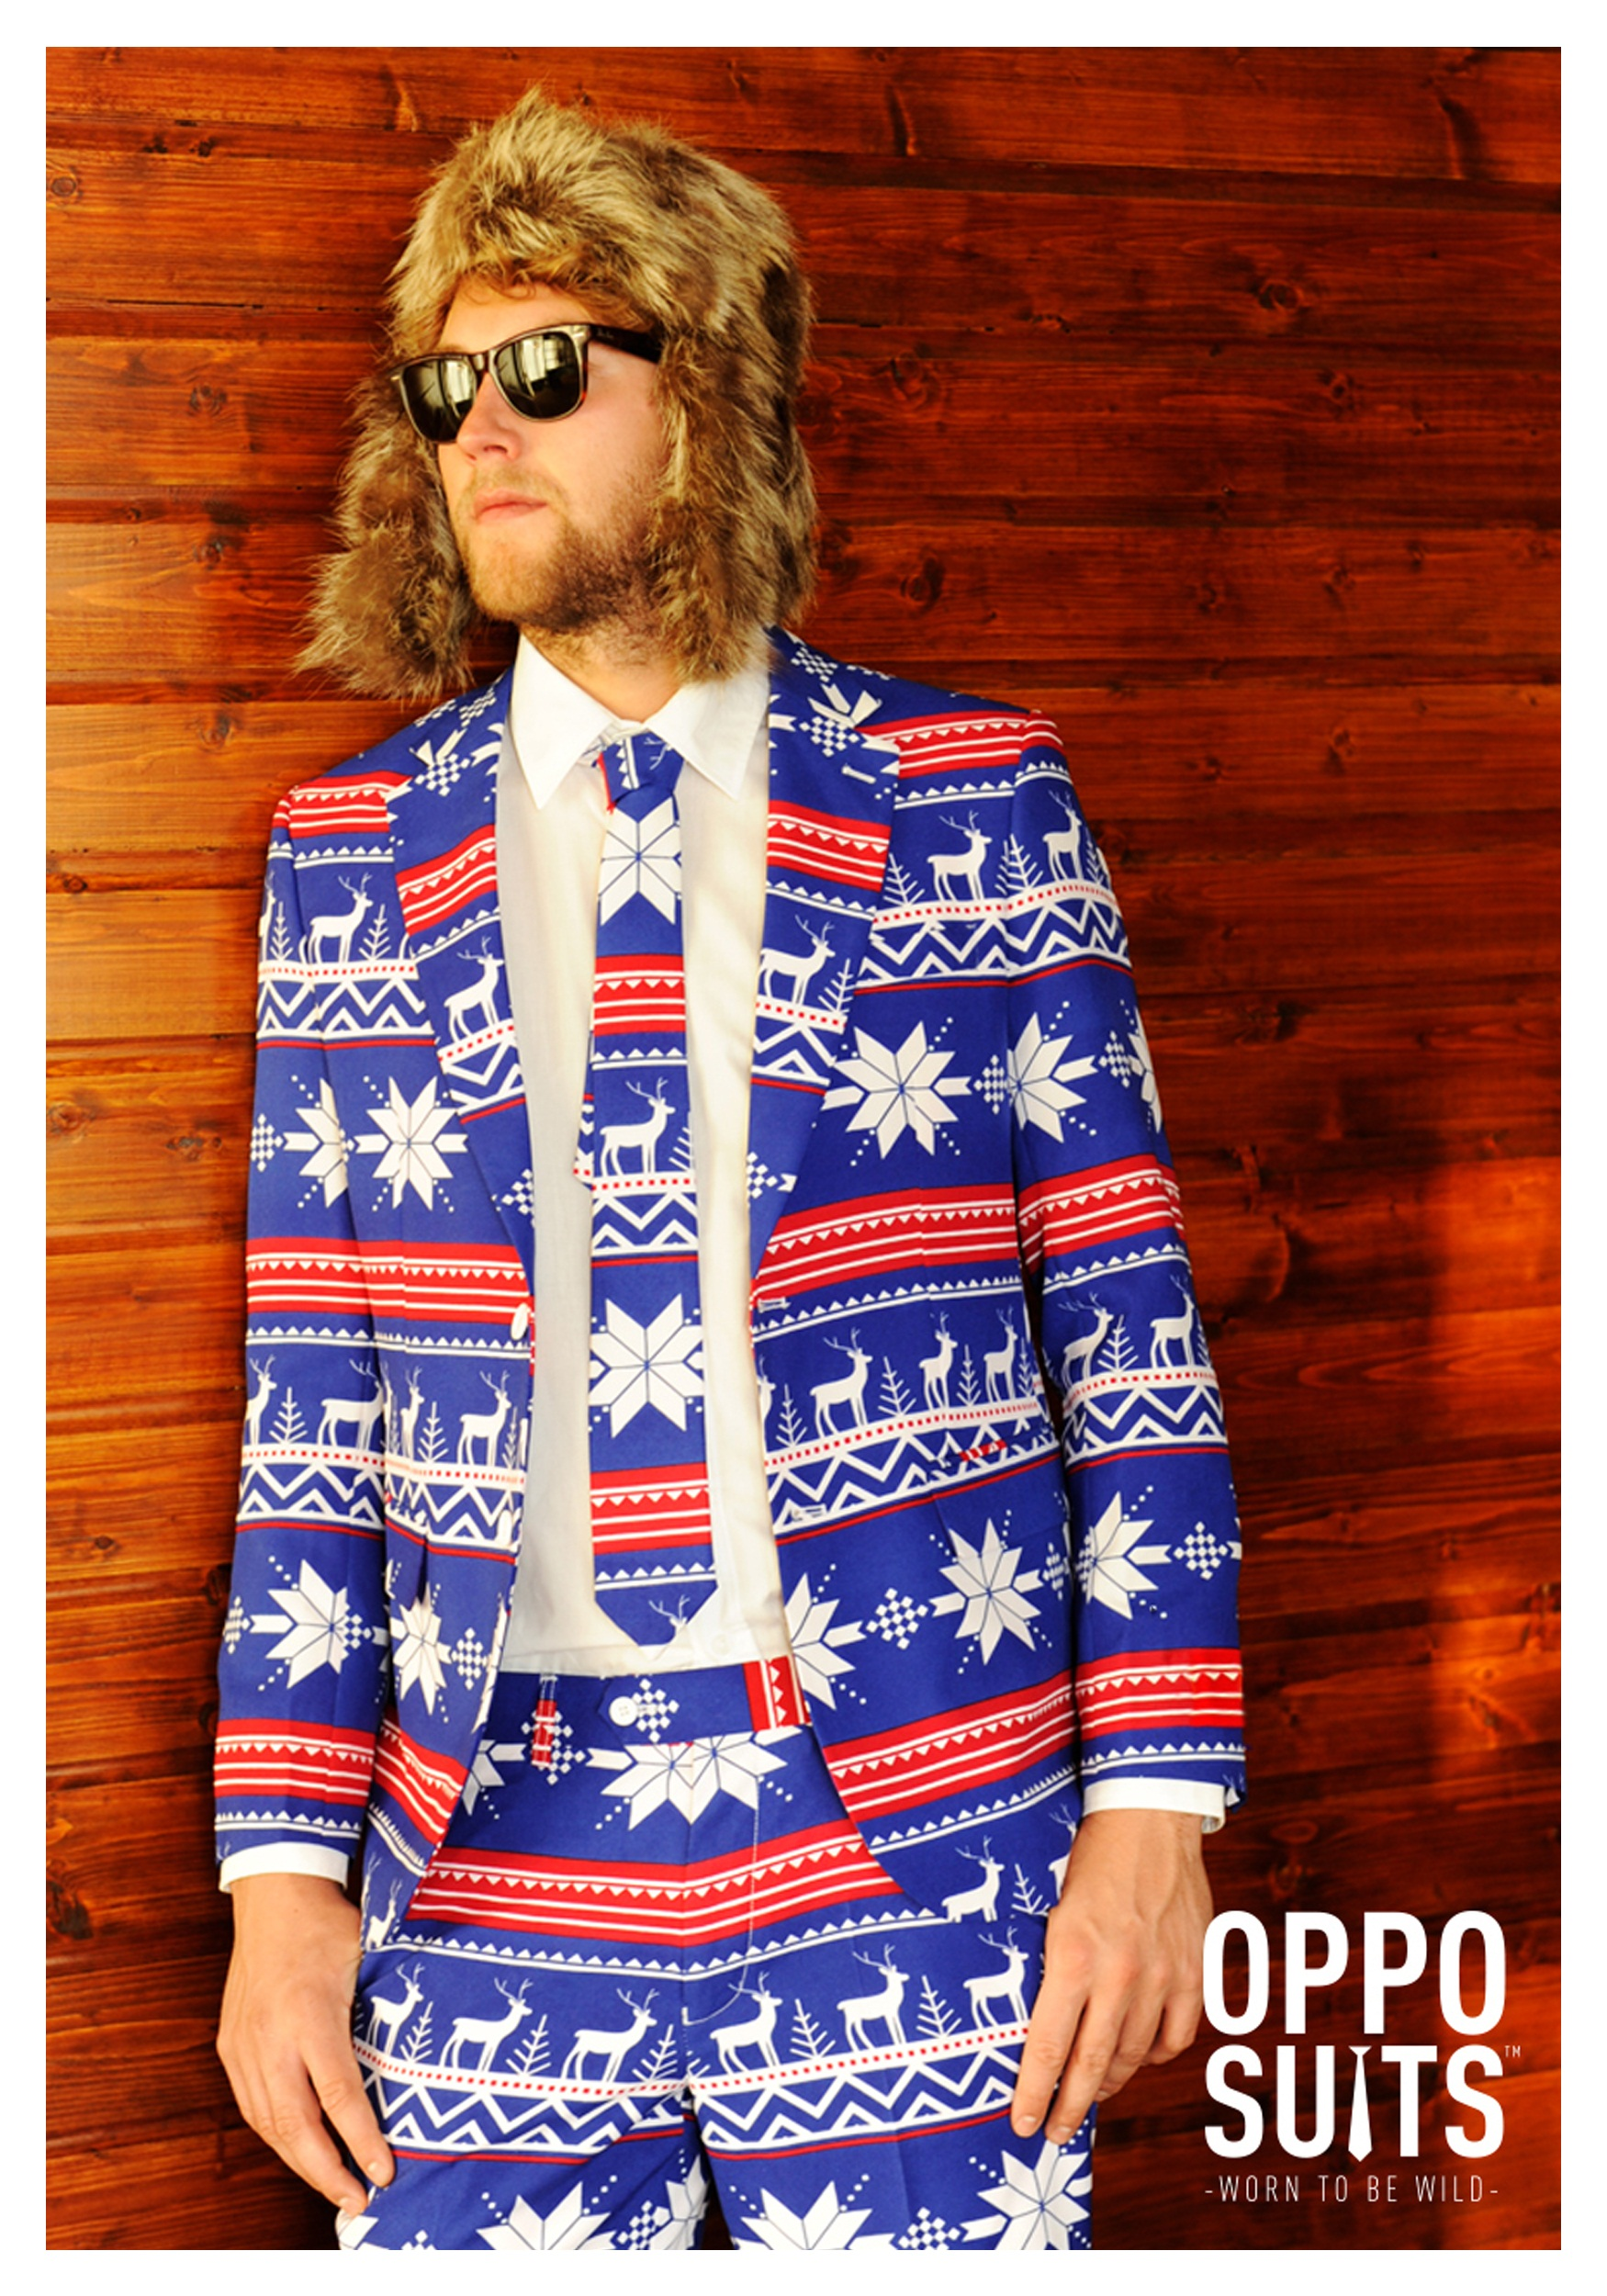 Christmas Sweater Suit.Men S Opposuits Ugly Christmas Sweater Costume Suit